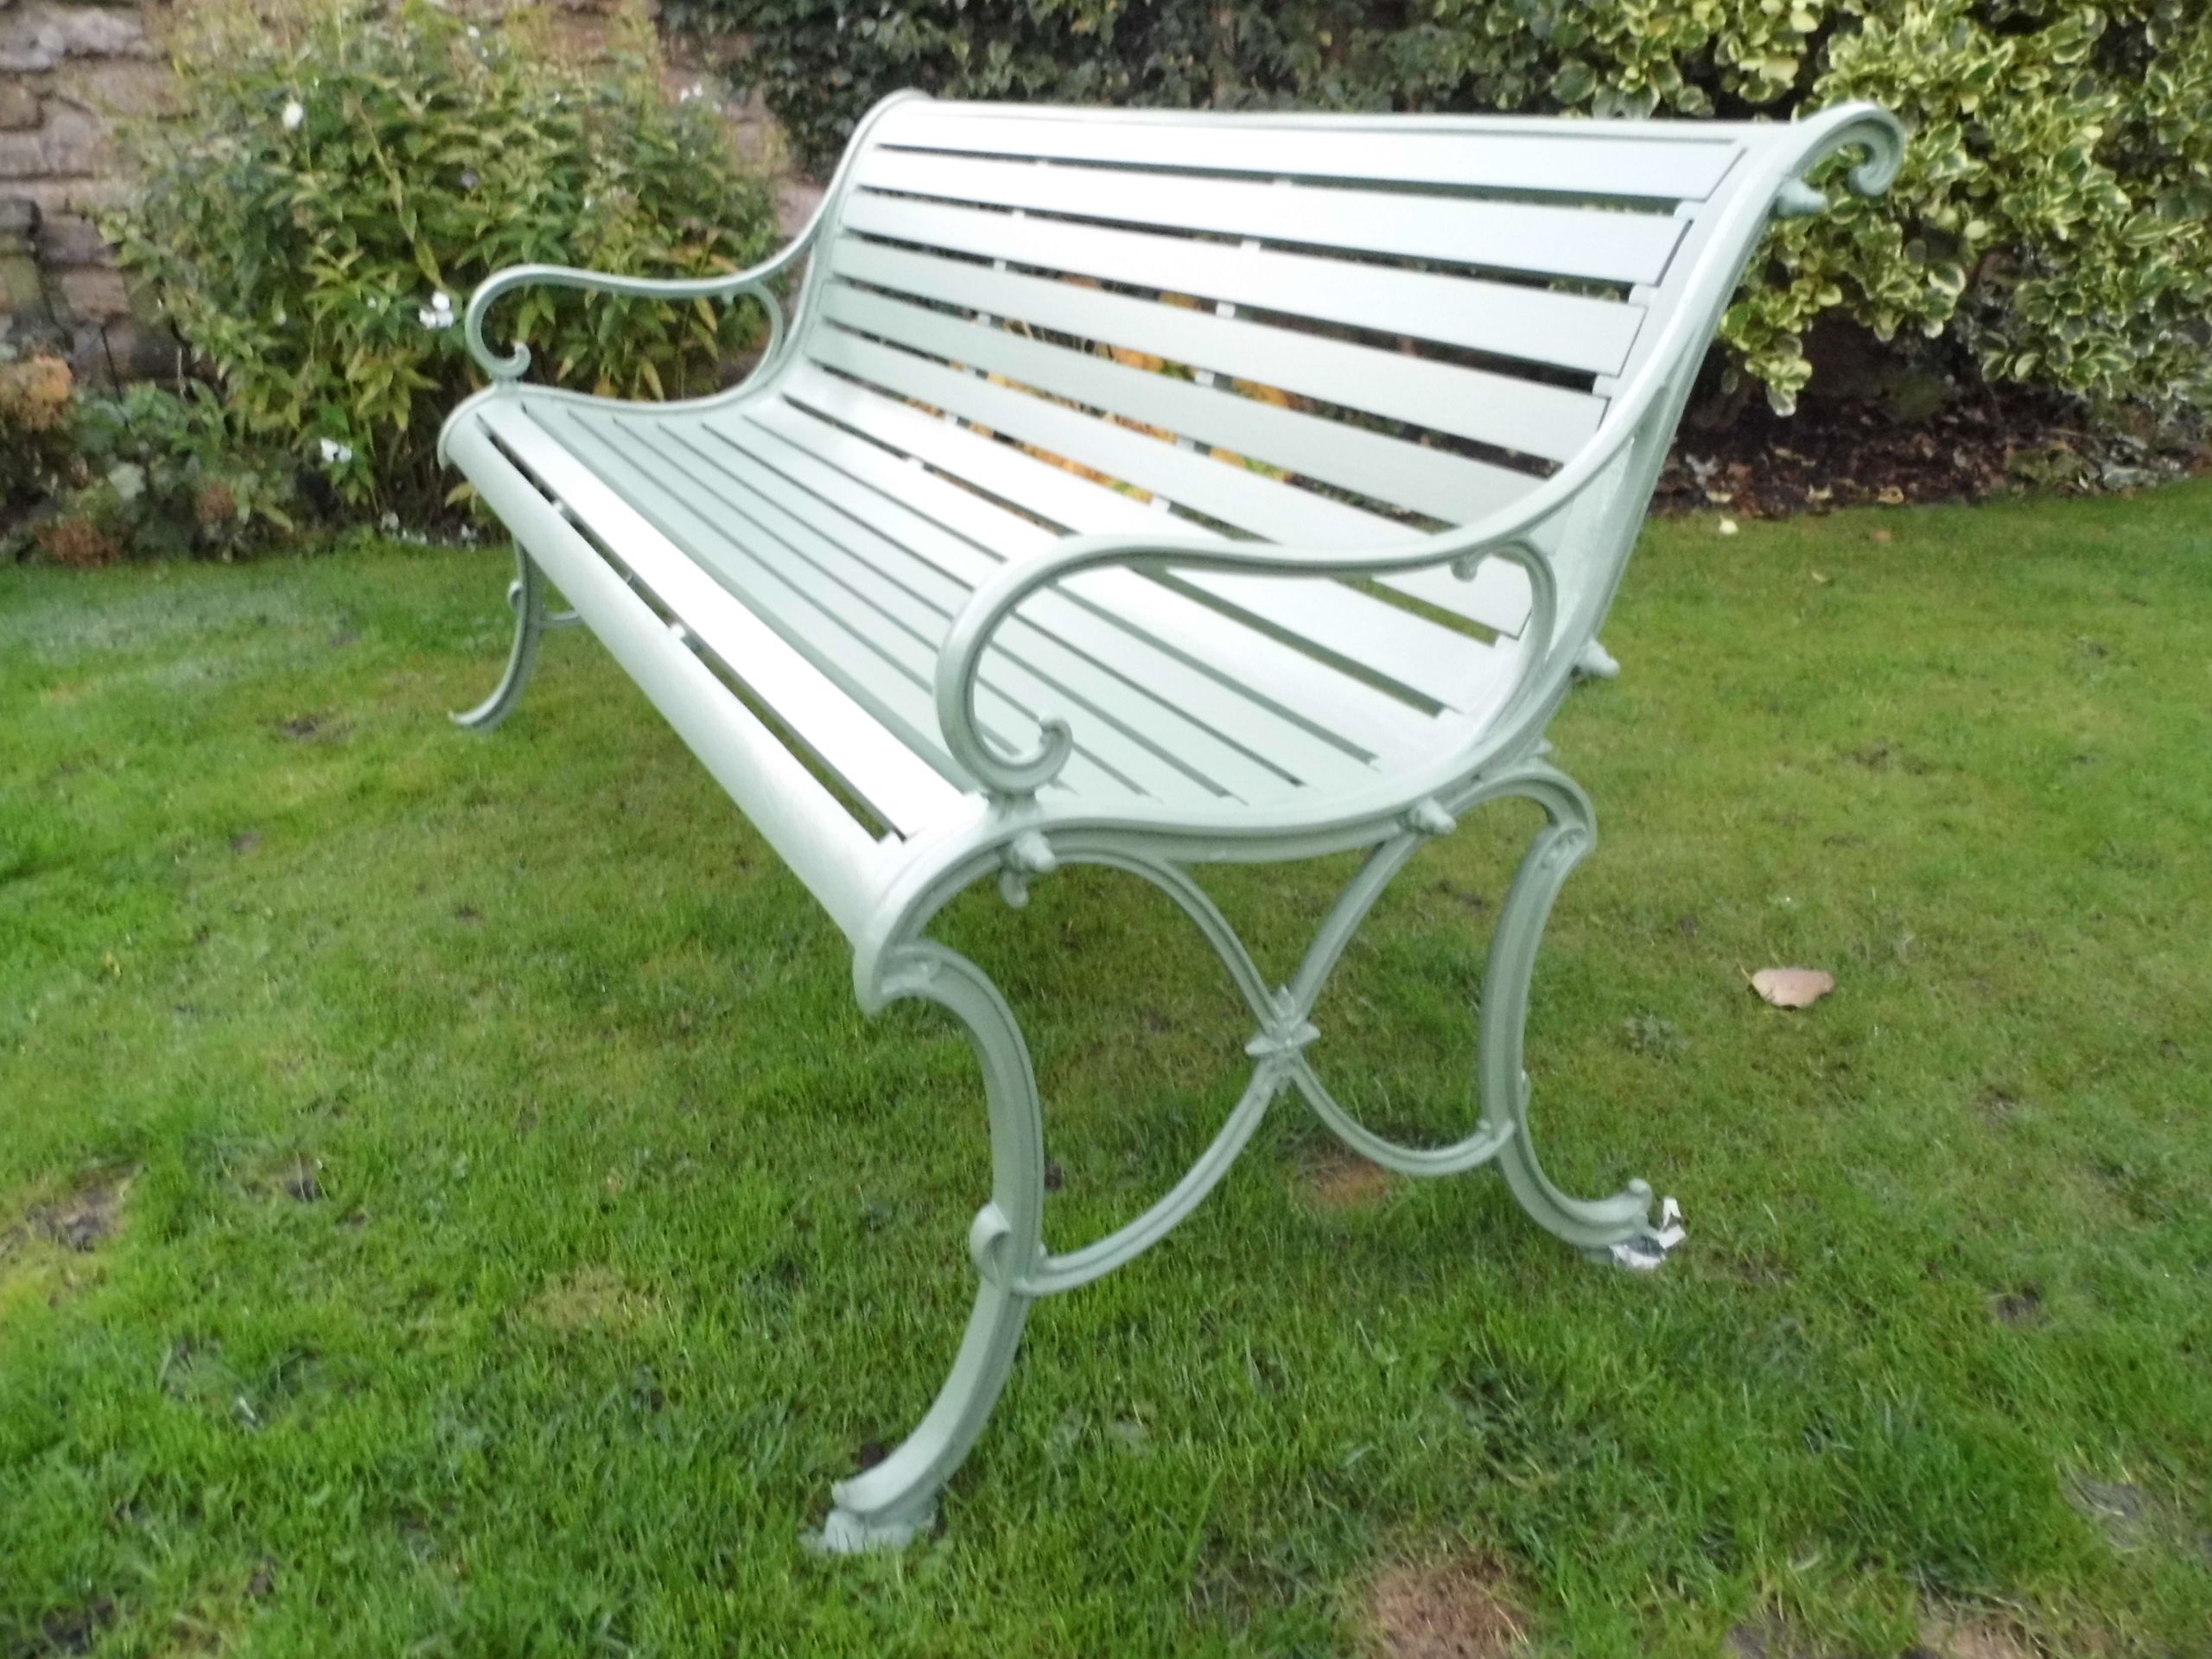 wrought furniture amazing products pinterest iron coast bench garden metal ideas gold amelia